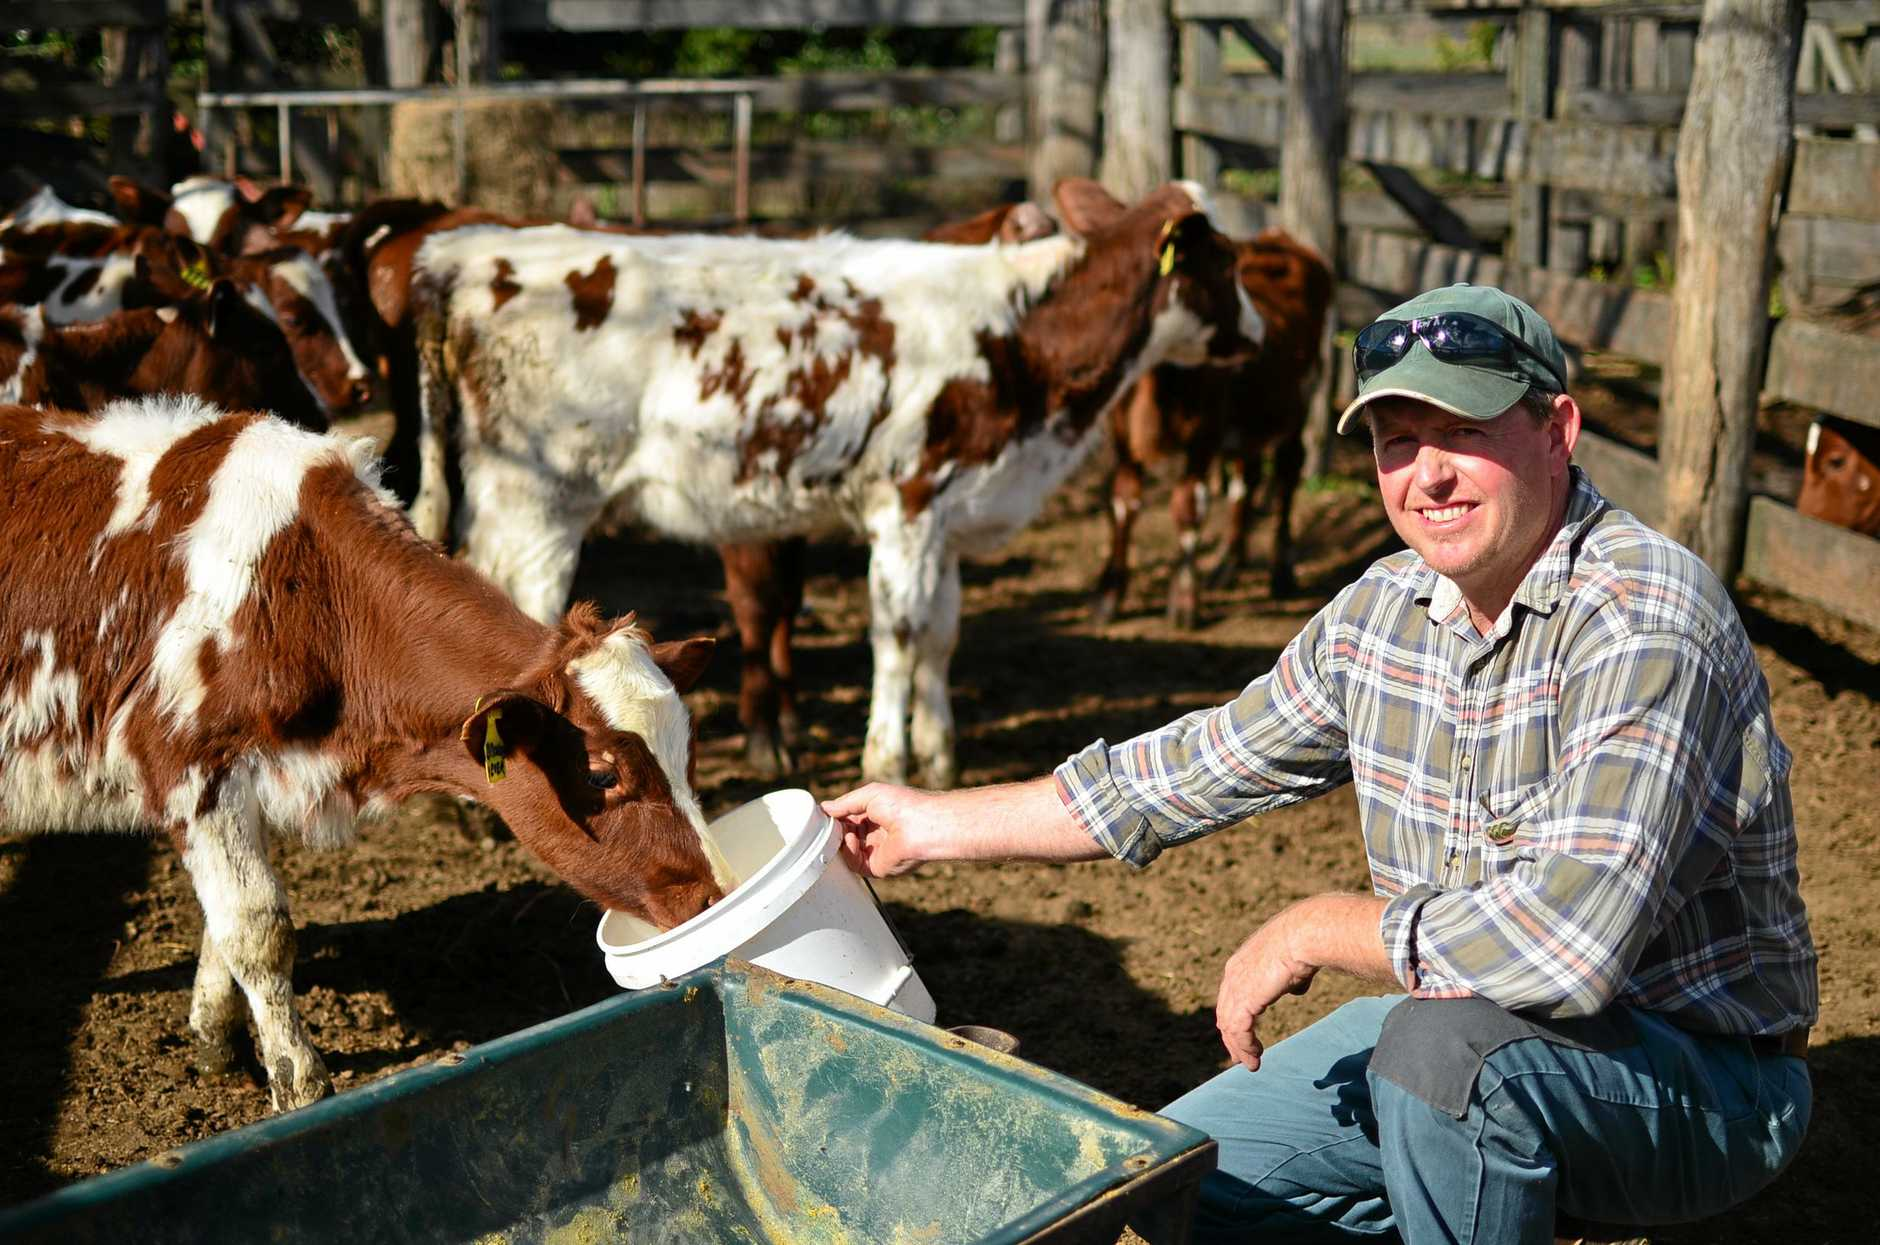 INVESTING IN THE FUTURE: The Bourke family from Gladfield have just built a new 50-cow rotary dairy a testament to their faith in the future of the sector. Pictured here is Kevin Bourke who handles calf rearing amongst other roles in the family operation. Photo Toni Somes / Warwick Daily News